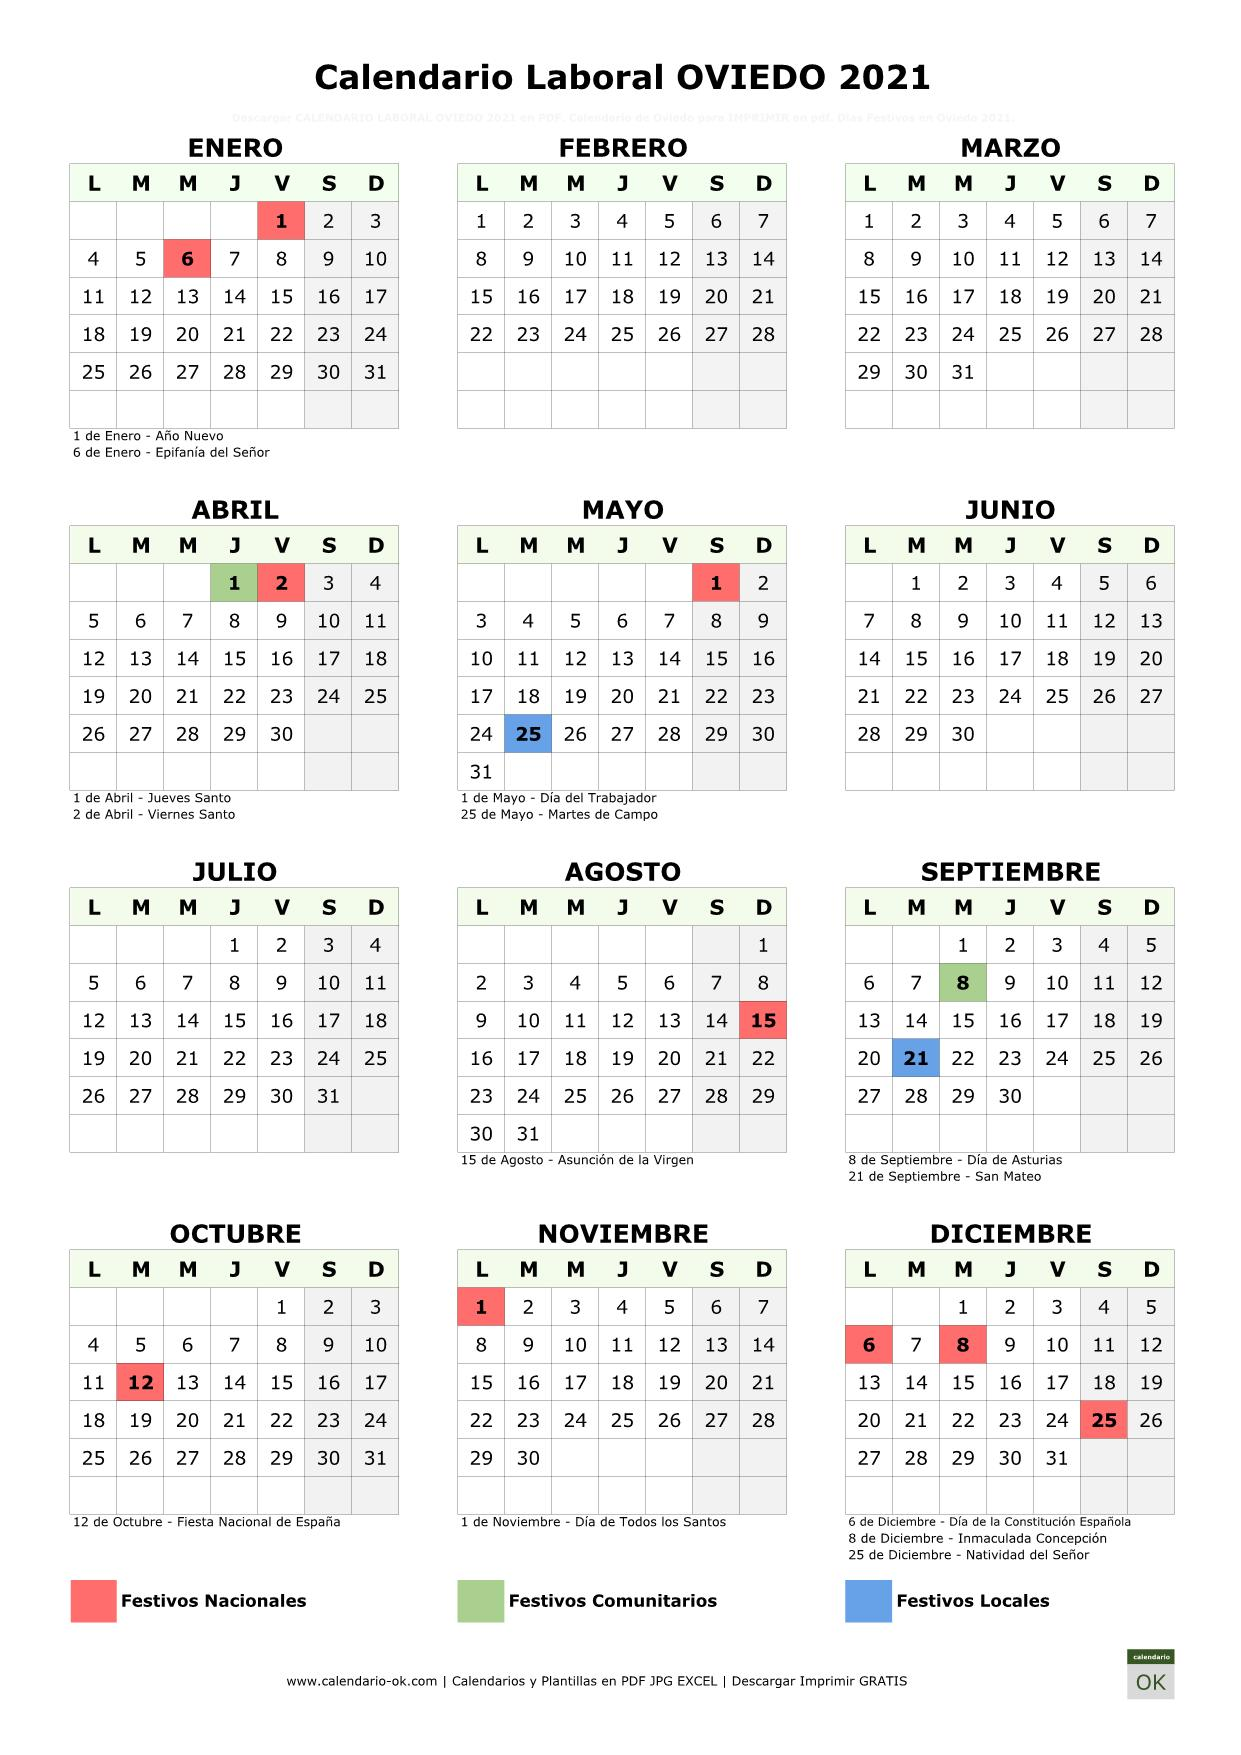 Calendario Laboral Oviedo 2021 vertical